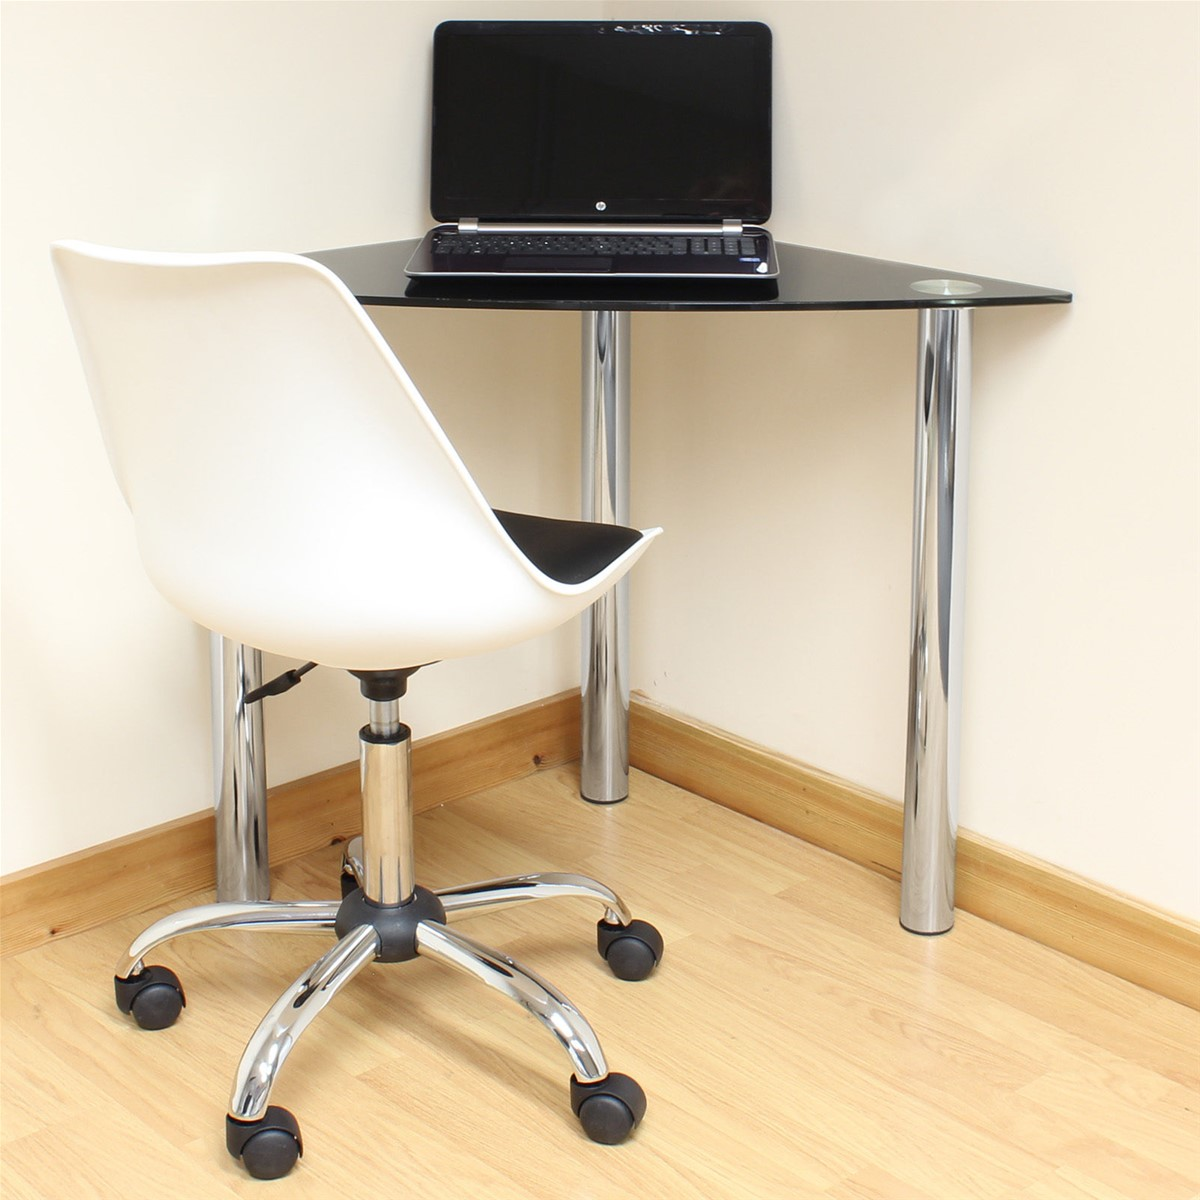 Black Glass Corner ComputerPCLaptop Desk HomeOfficeStudy Table Chrome Legs